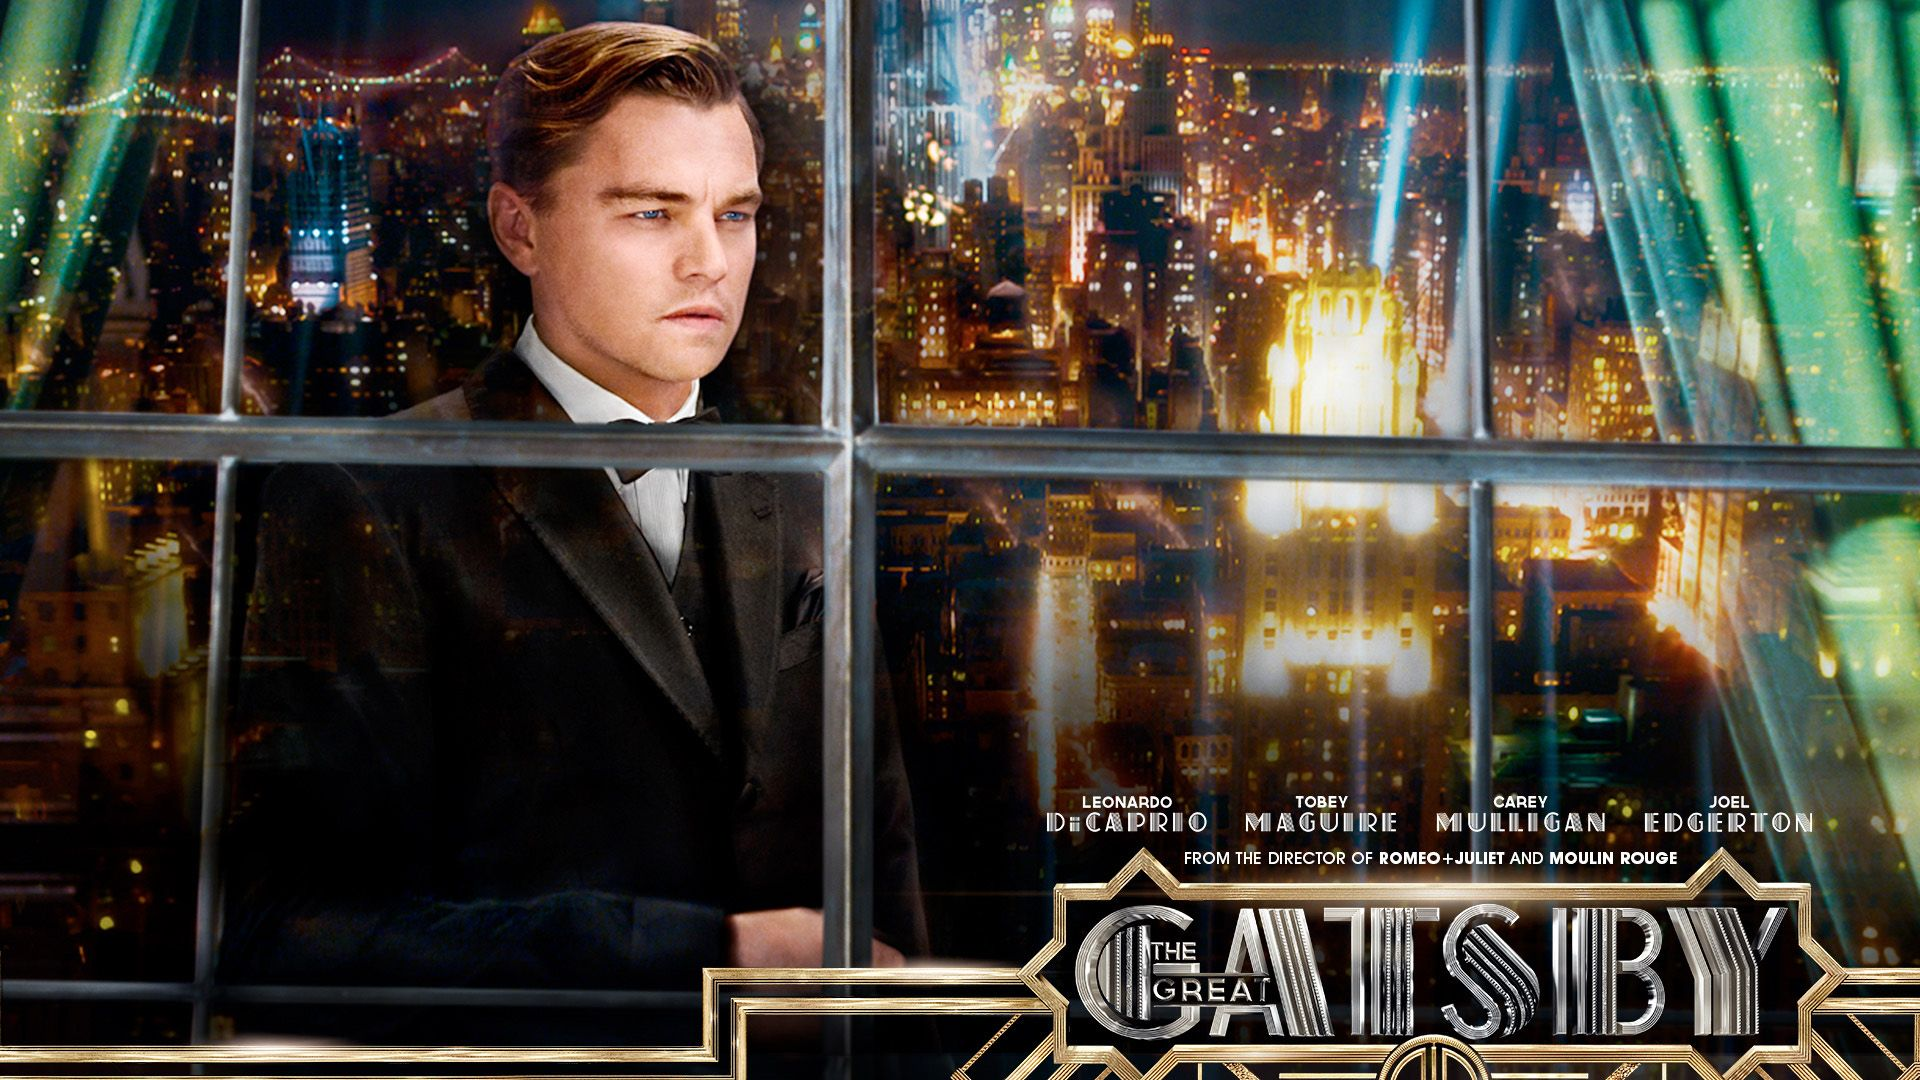 Great Gatsby download free wallpapers for pc in hd